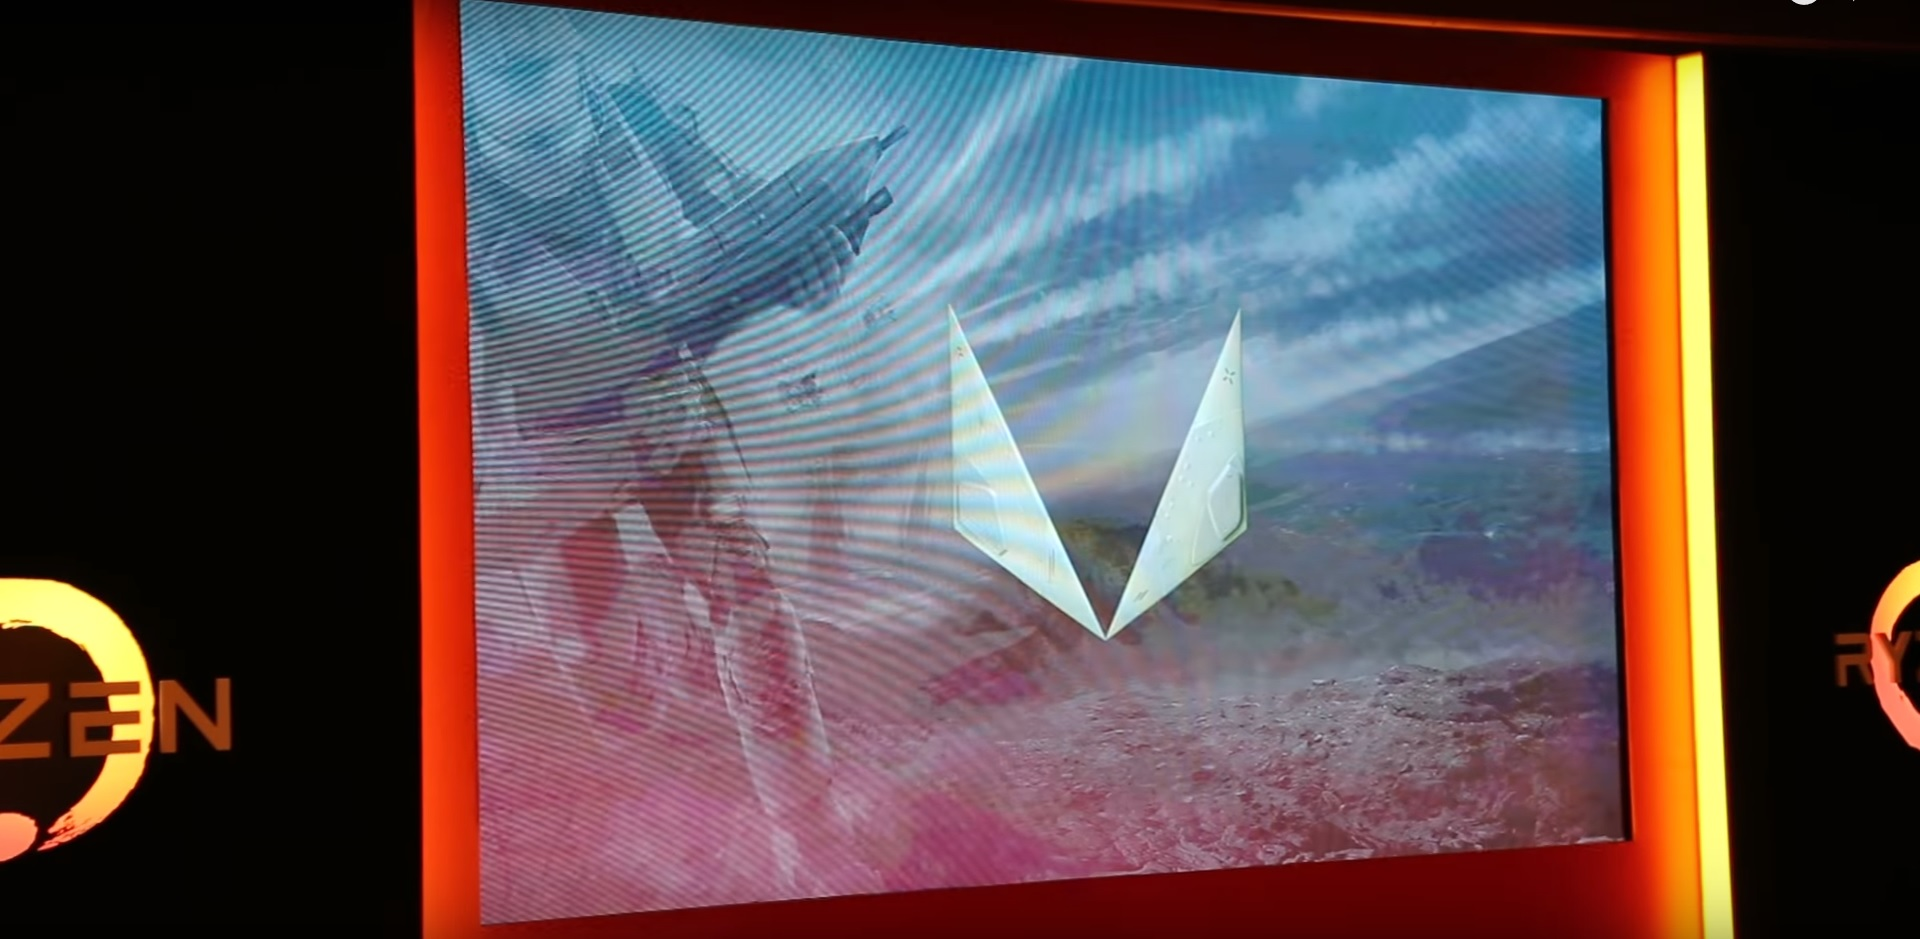 AMD may have leaked Halo 3 for the PC, artwork showcased